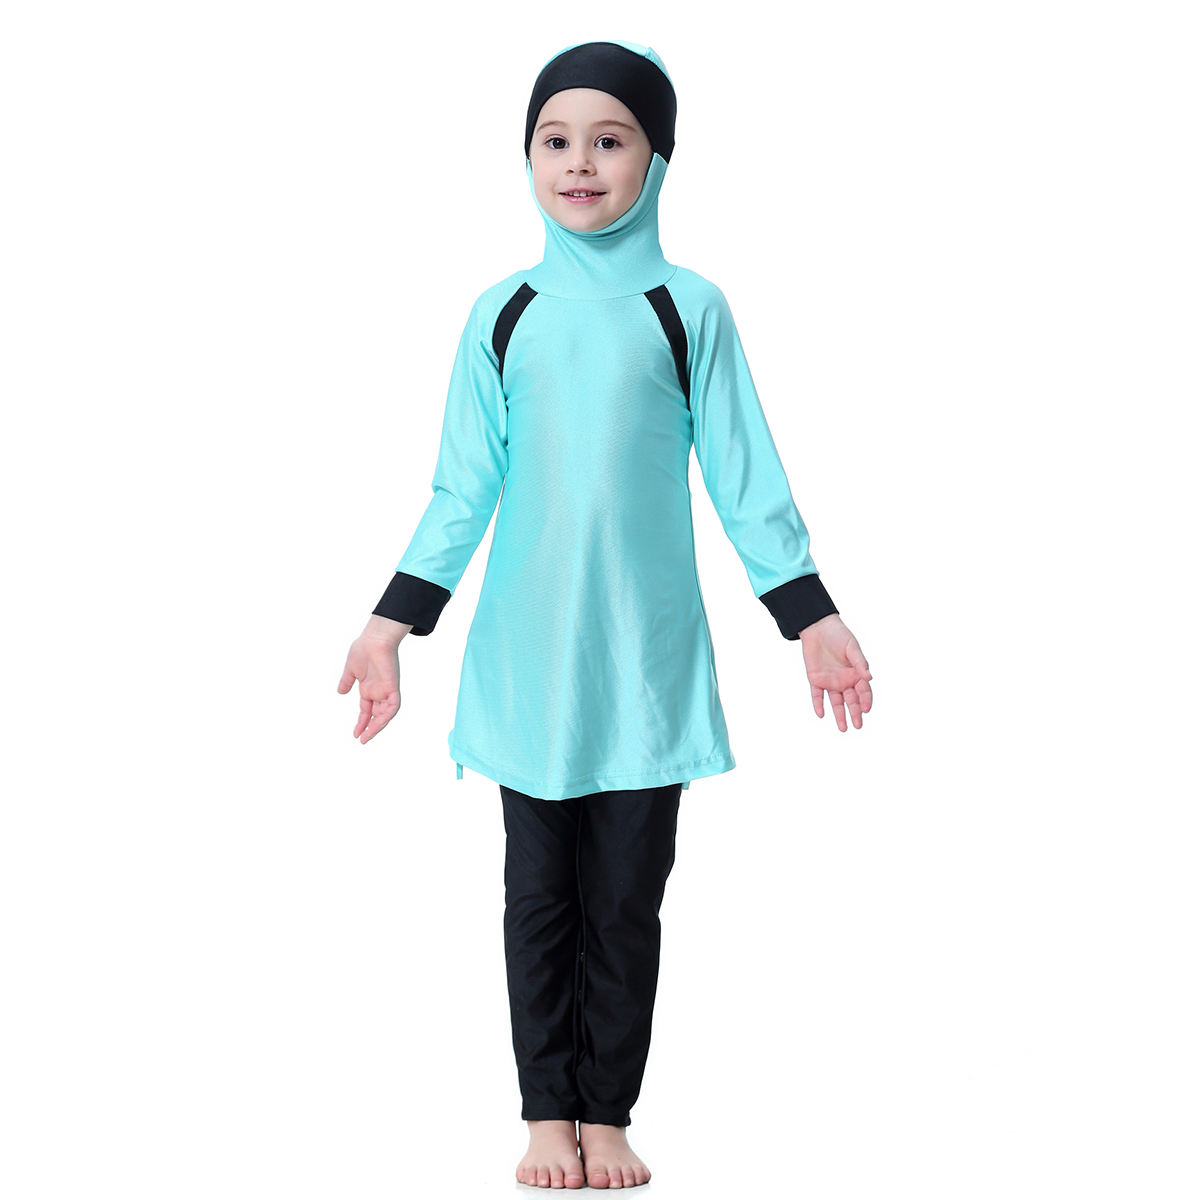 Stock 3 colors full coverage children Swimwear girls Modest Islamic Muslim Swimsuit for wholesale